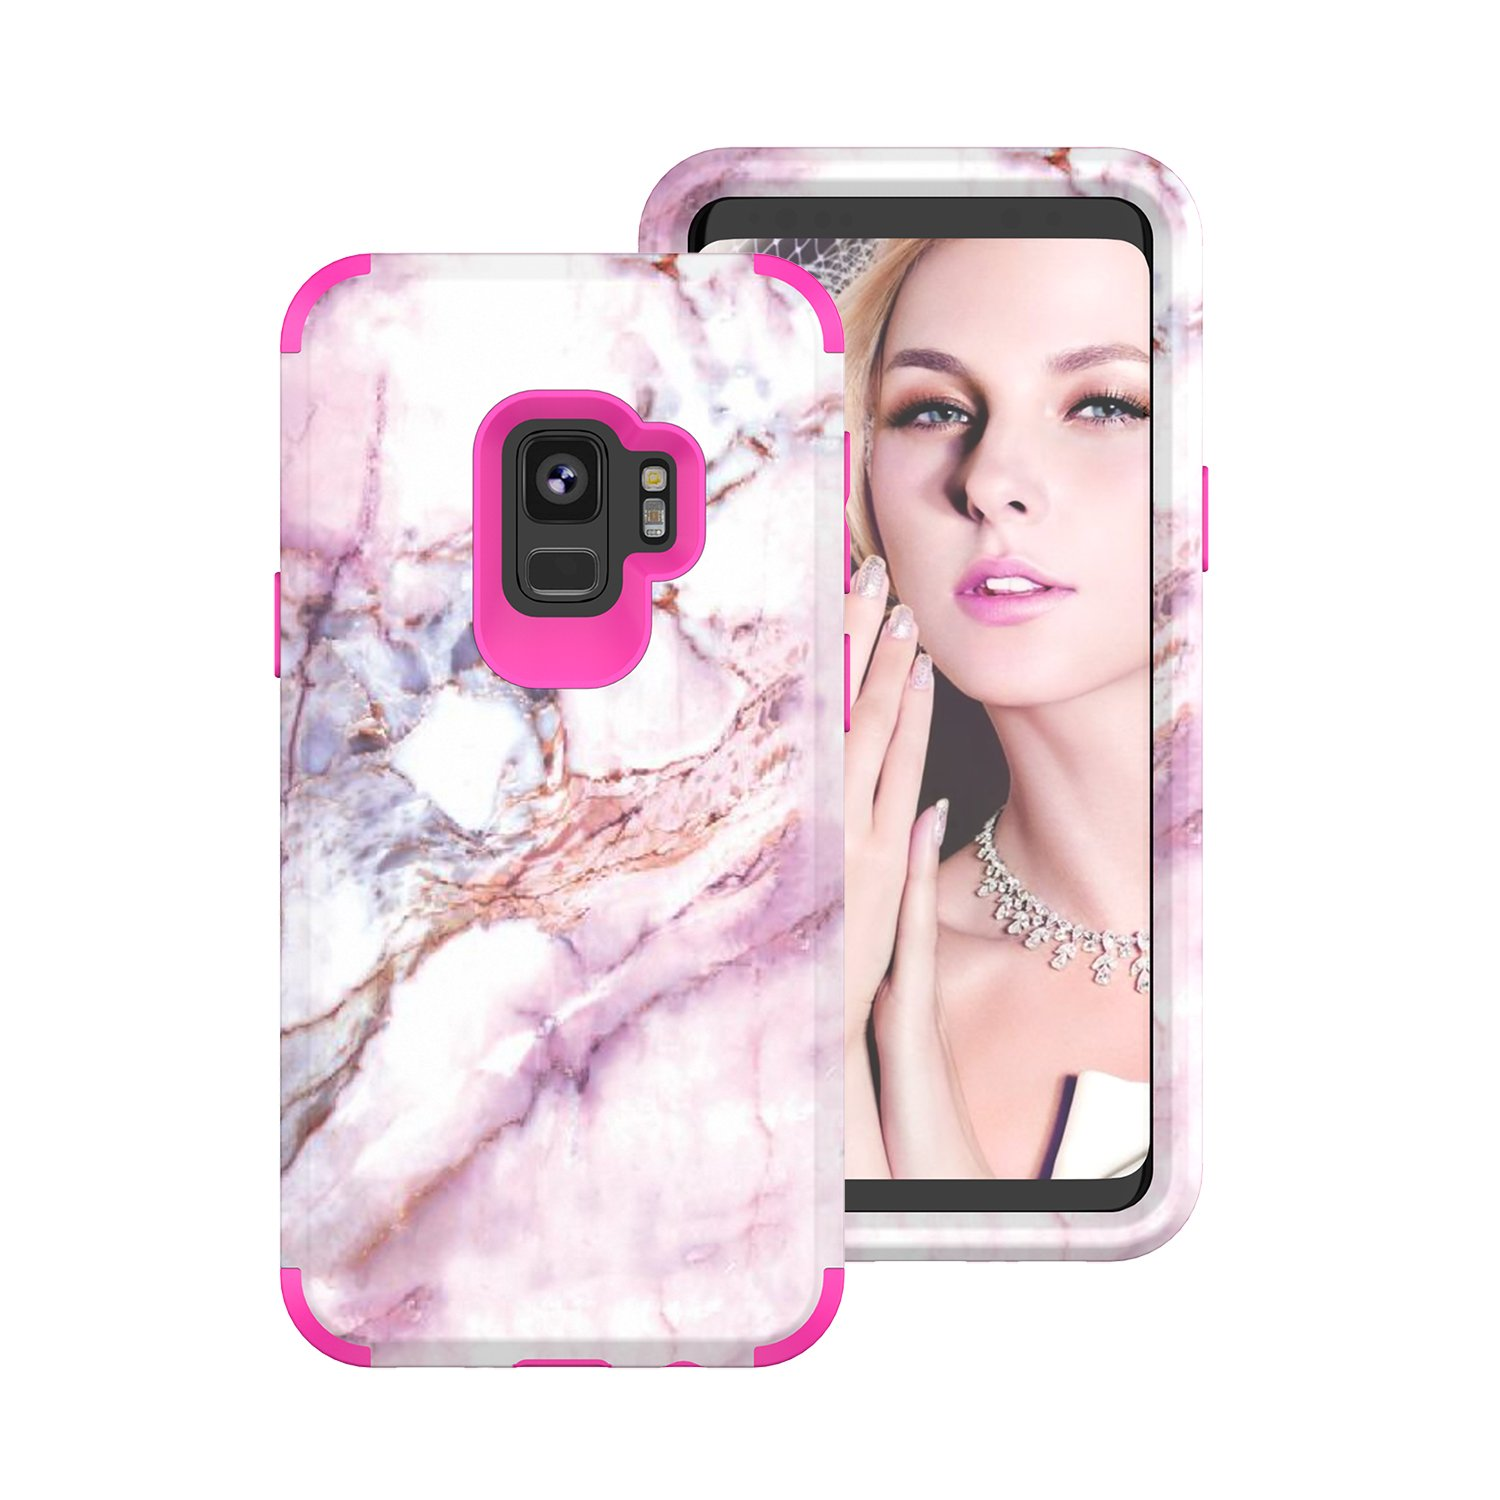 Galaxy S9 Plus Full Protective Case S9 Plus Marble Rose Gold Case, Gostyle Stylish Slim 3 in 1 Shockproof Hybrid Hard PC Soft Silicone Anti-Scratch Anti-Drop Armor Defender Bumper Cover